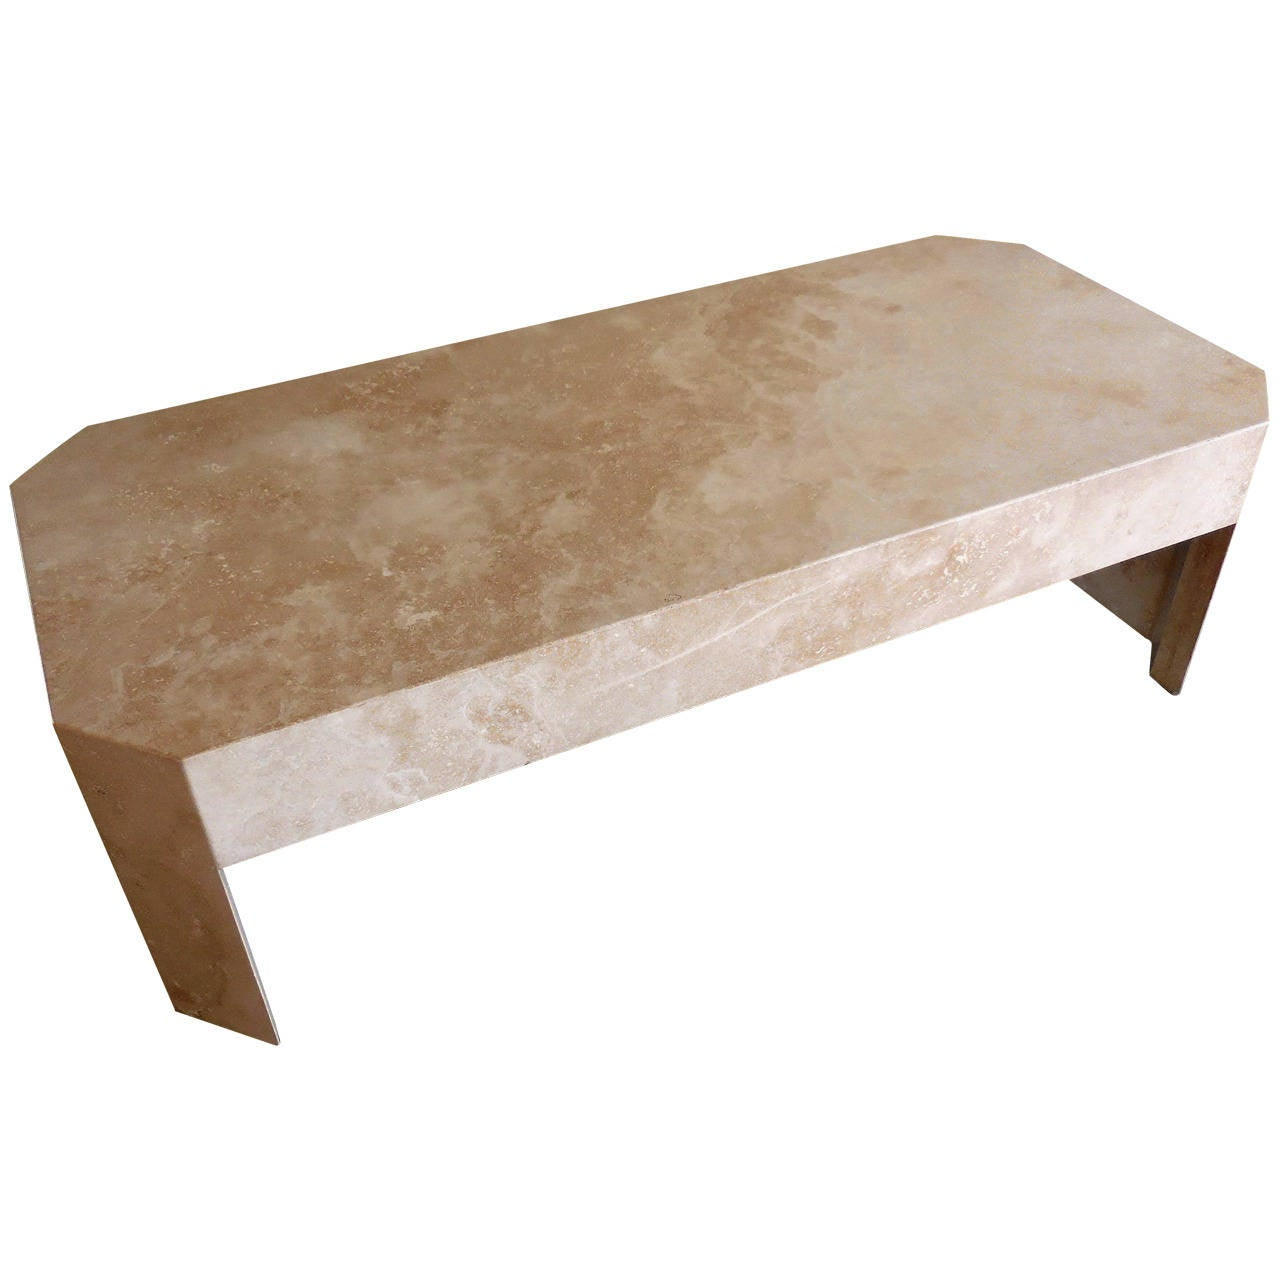 Travertine Slab Coffee Table: Canted Corner Rectangular Travertine Coffee Table, Circa